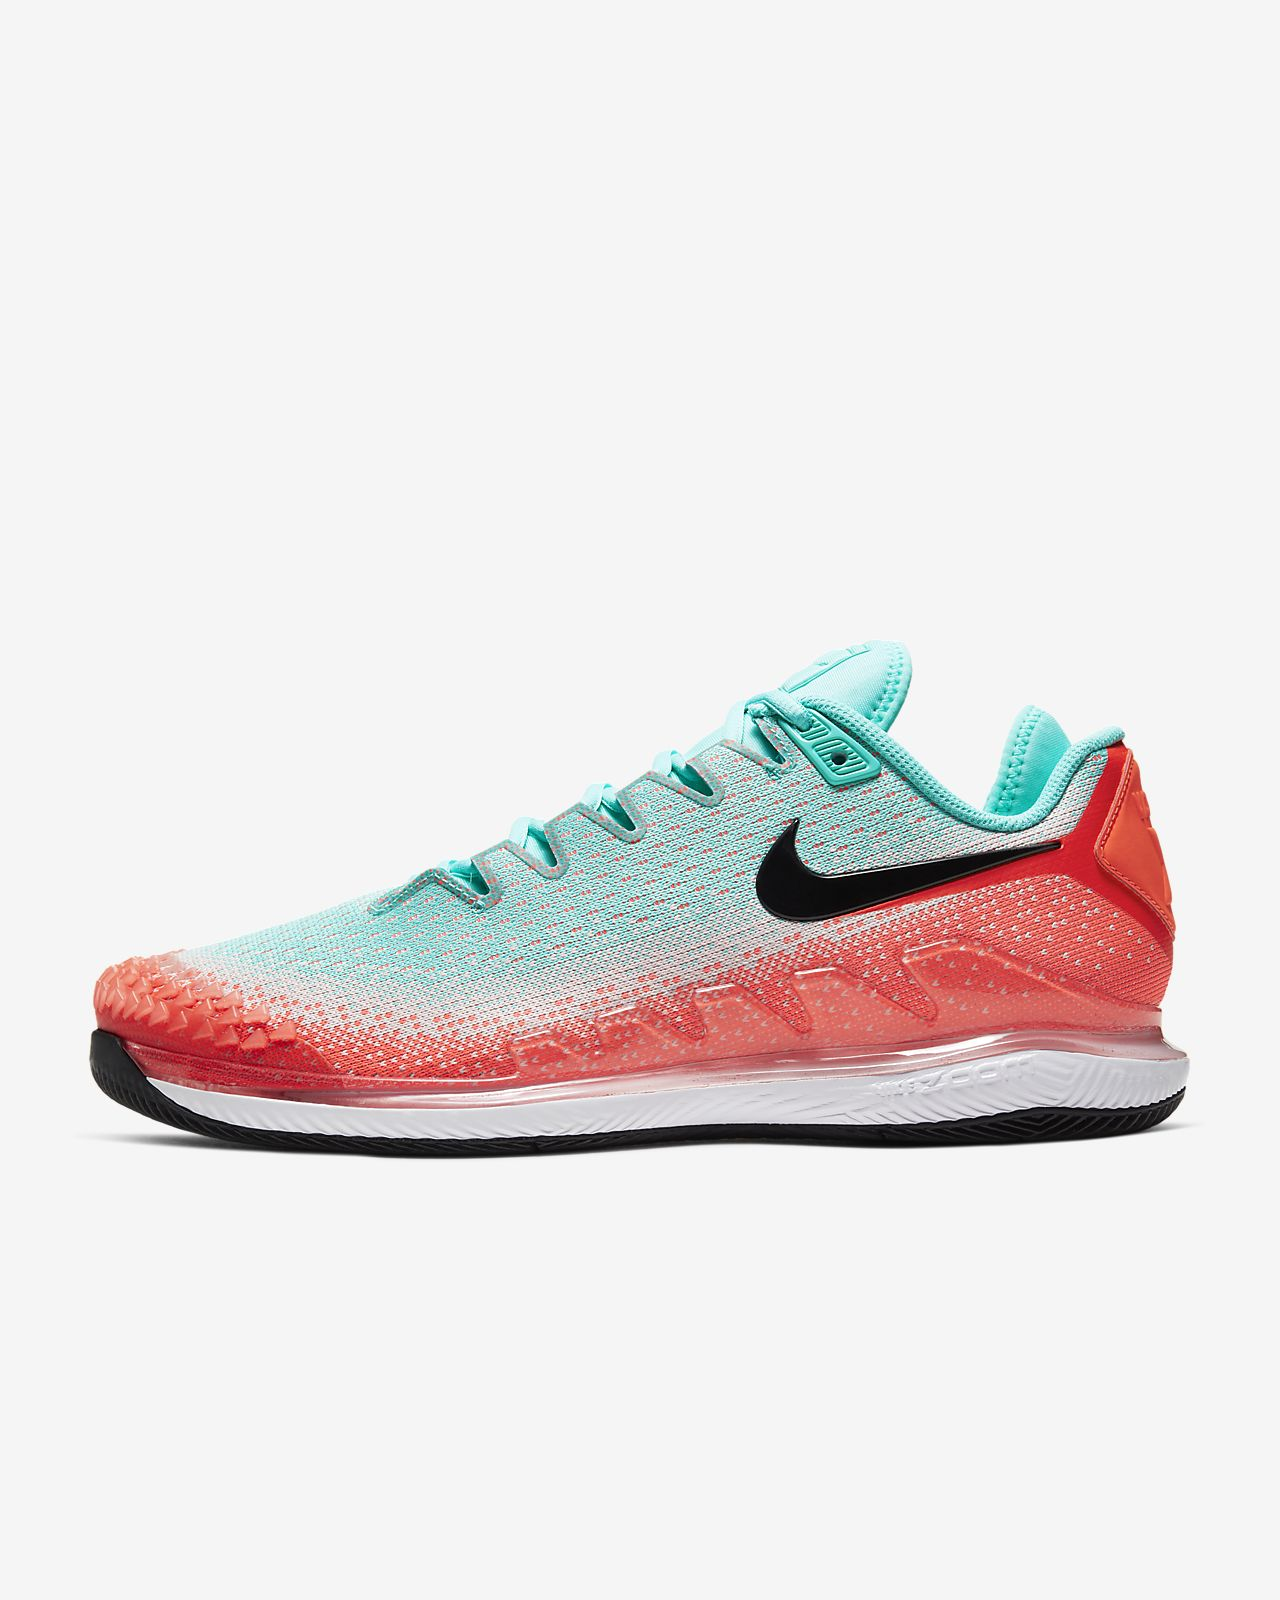 Nike Air Zoom Vapor X Chaussures Toutes Surfaces Hommes